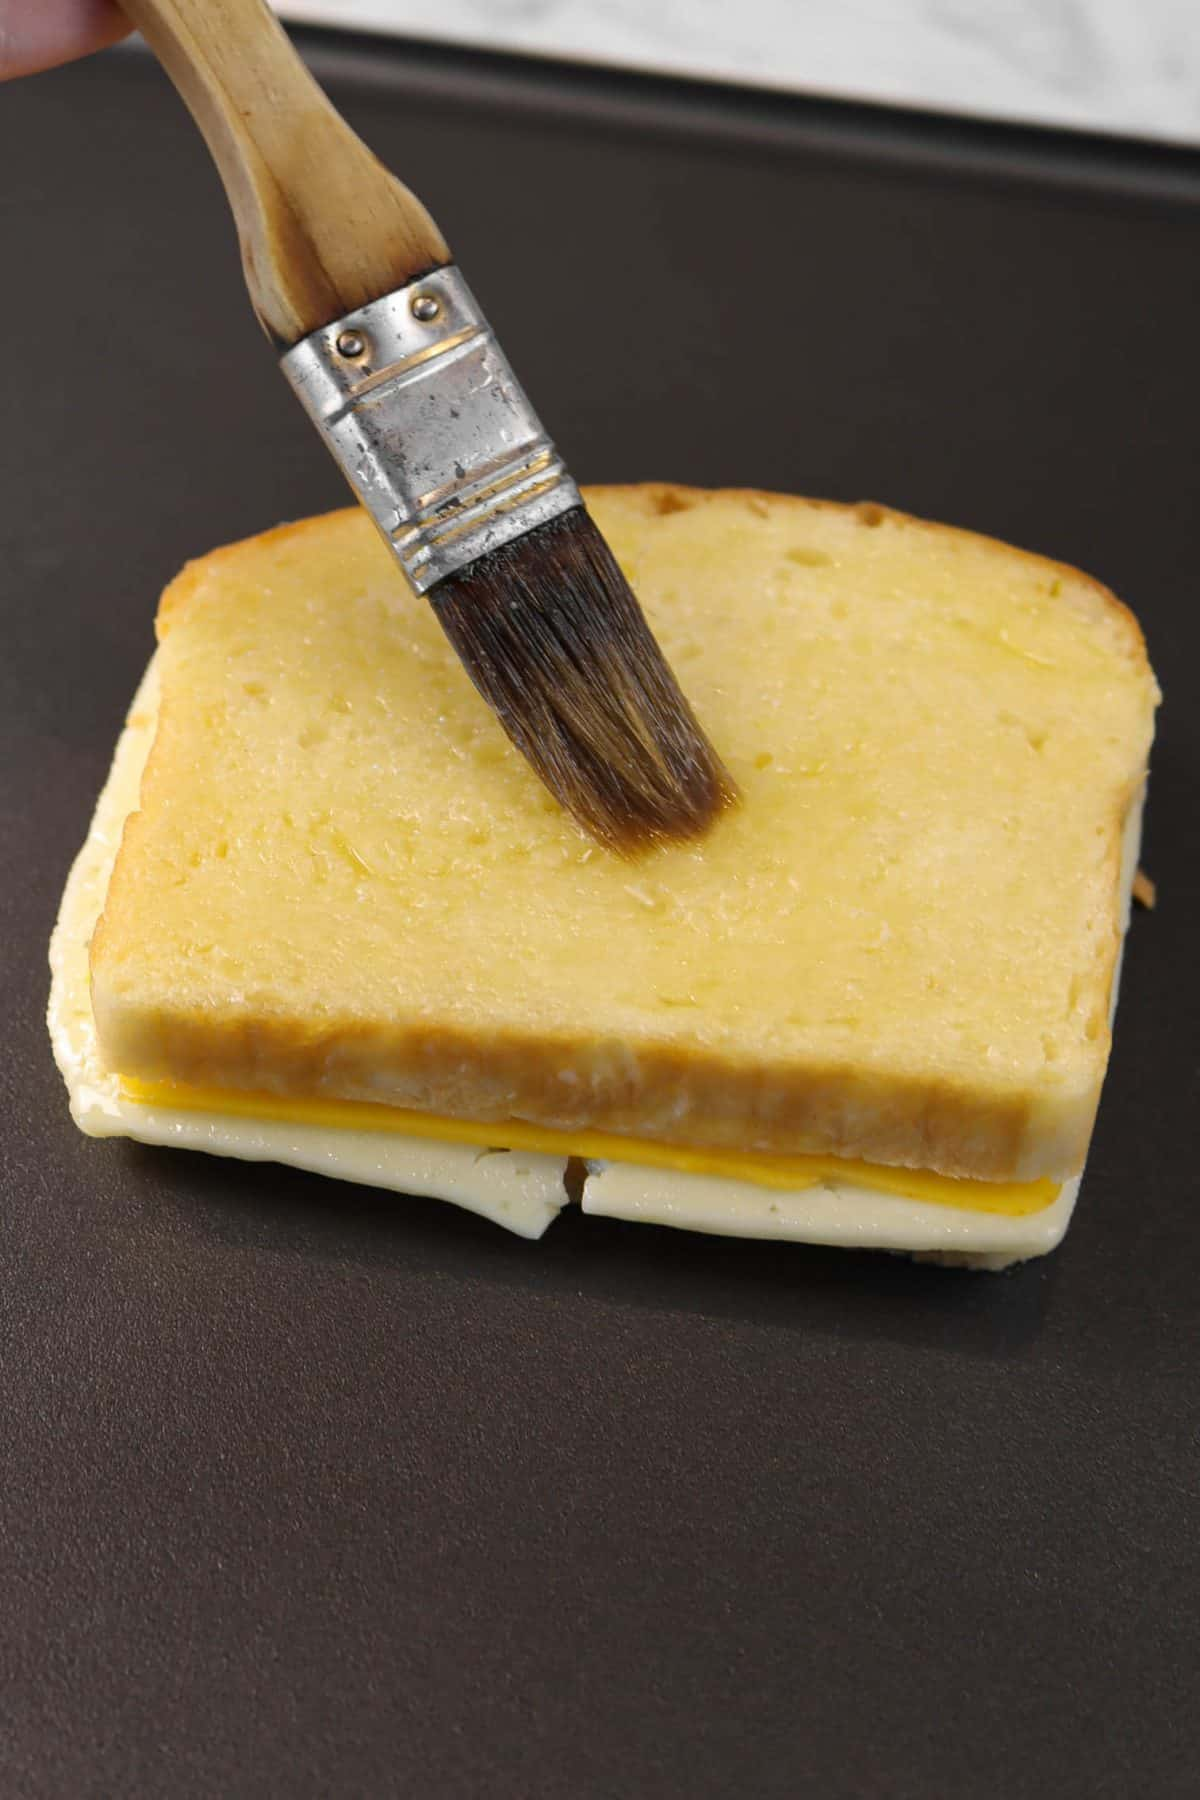 butter being brushed onto bread slice